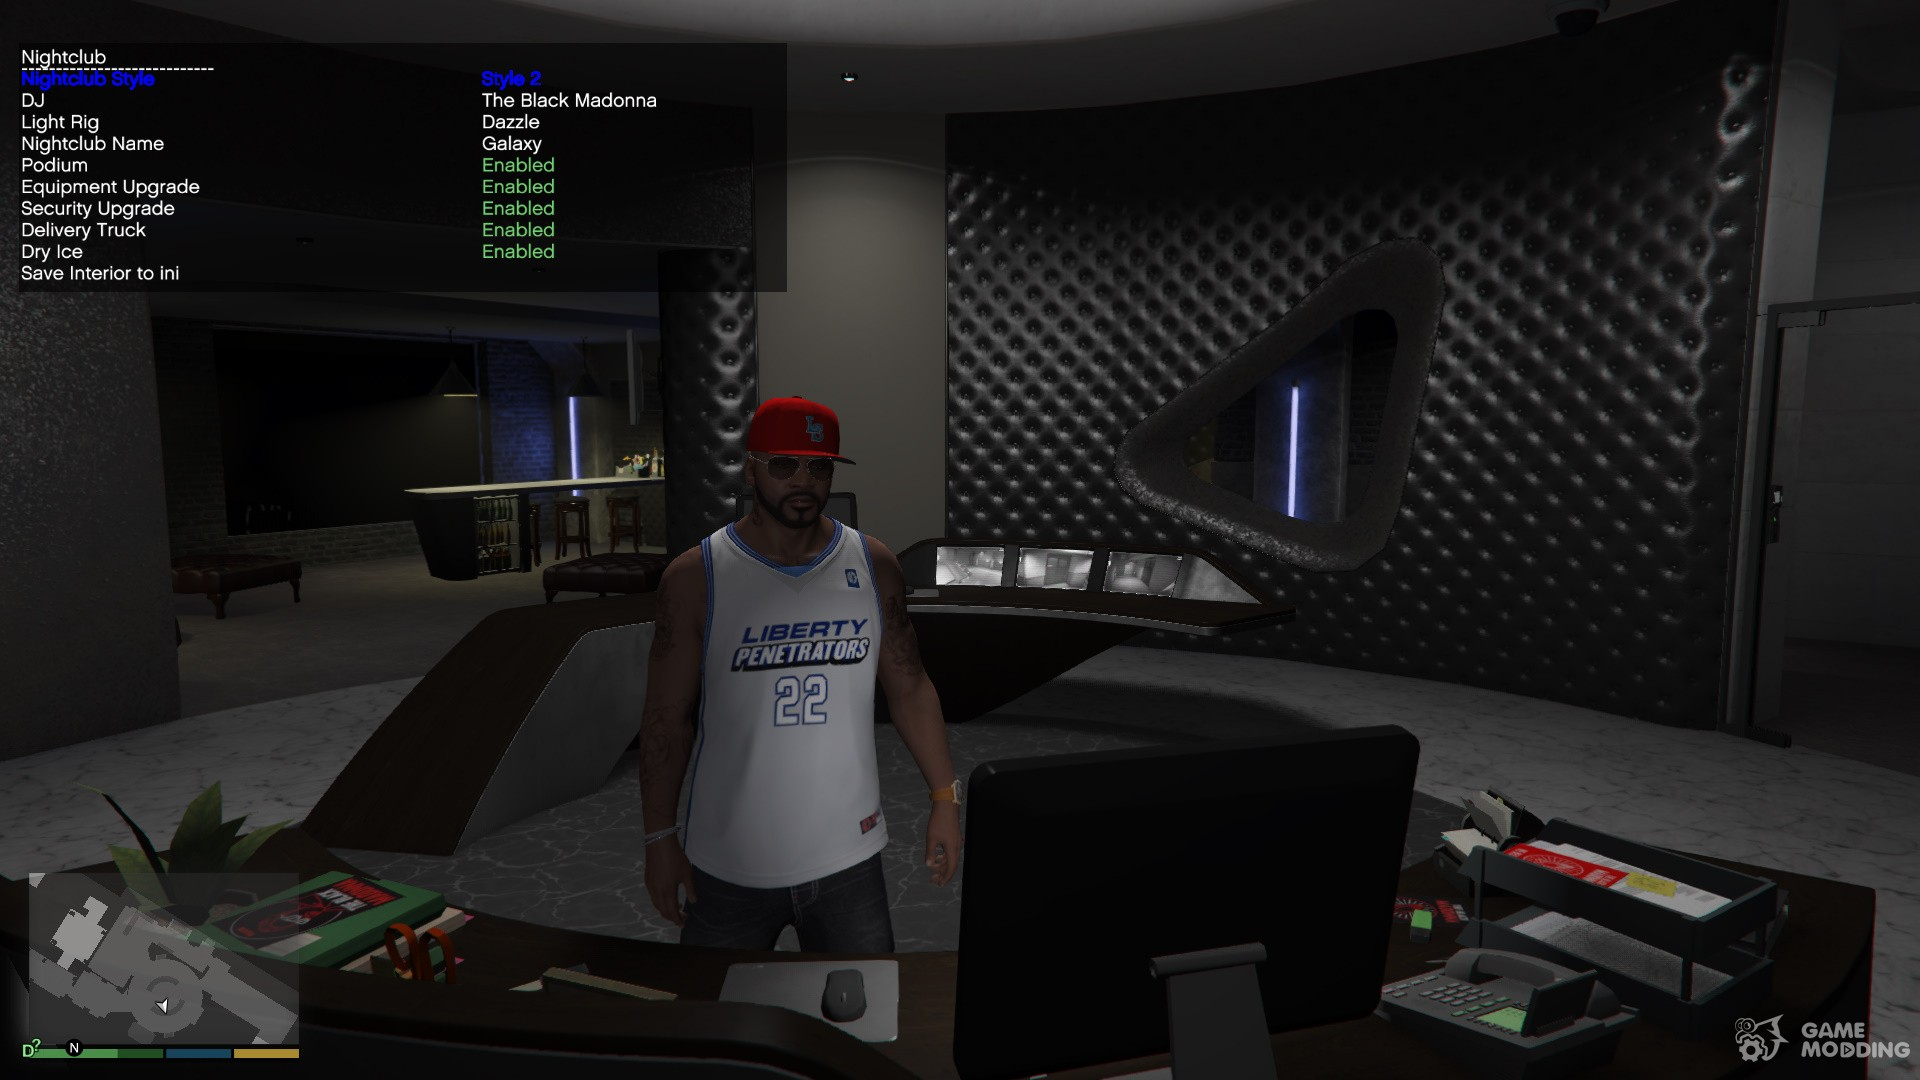 Trainer for fivem | HOW TO INSTALL: FiveM (GTA RP) + Trainer